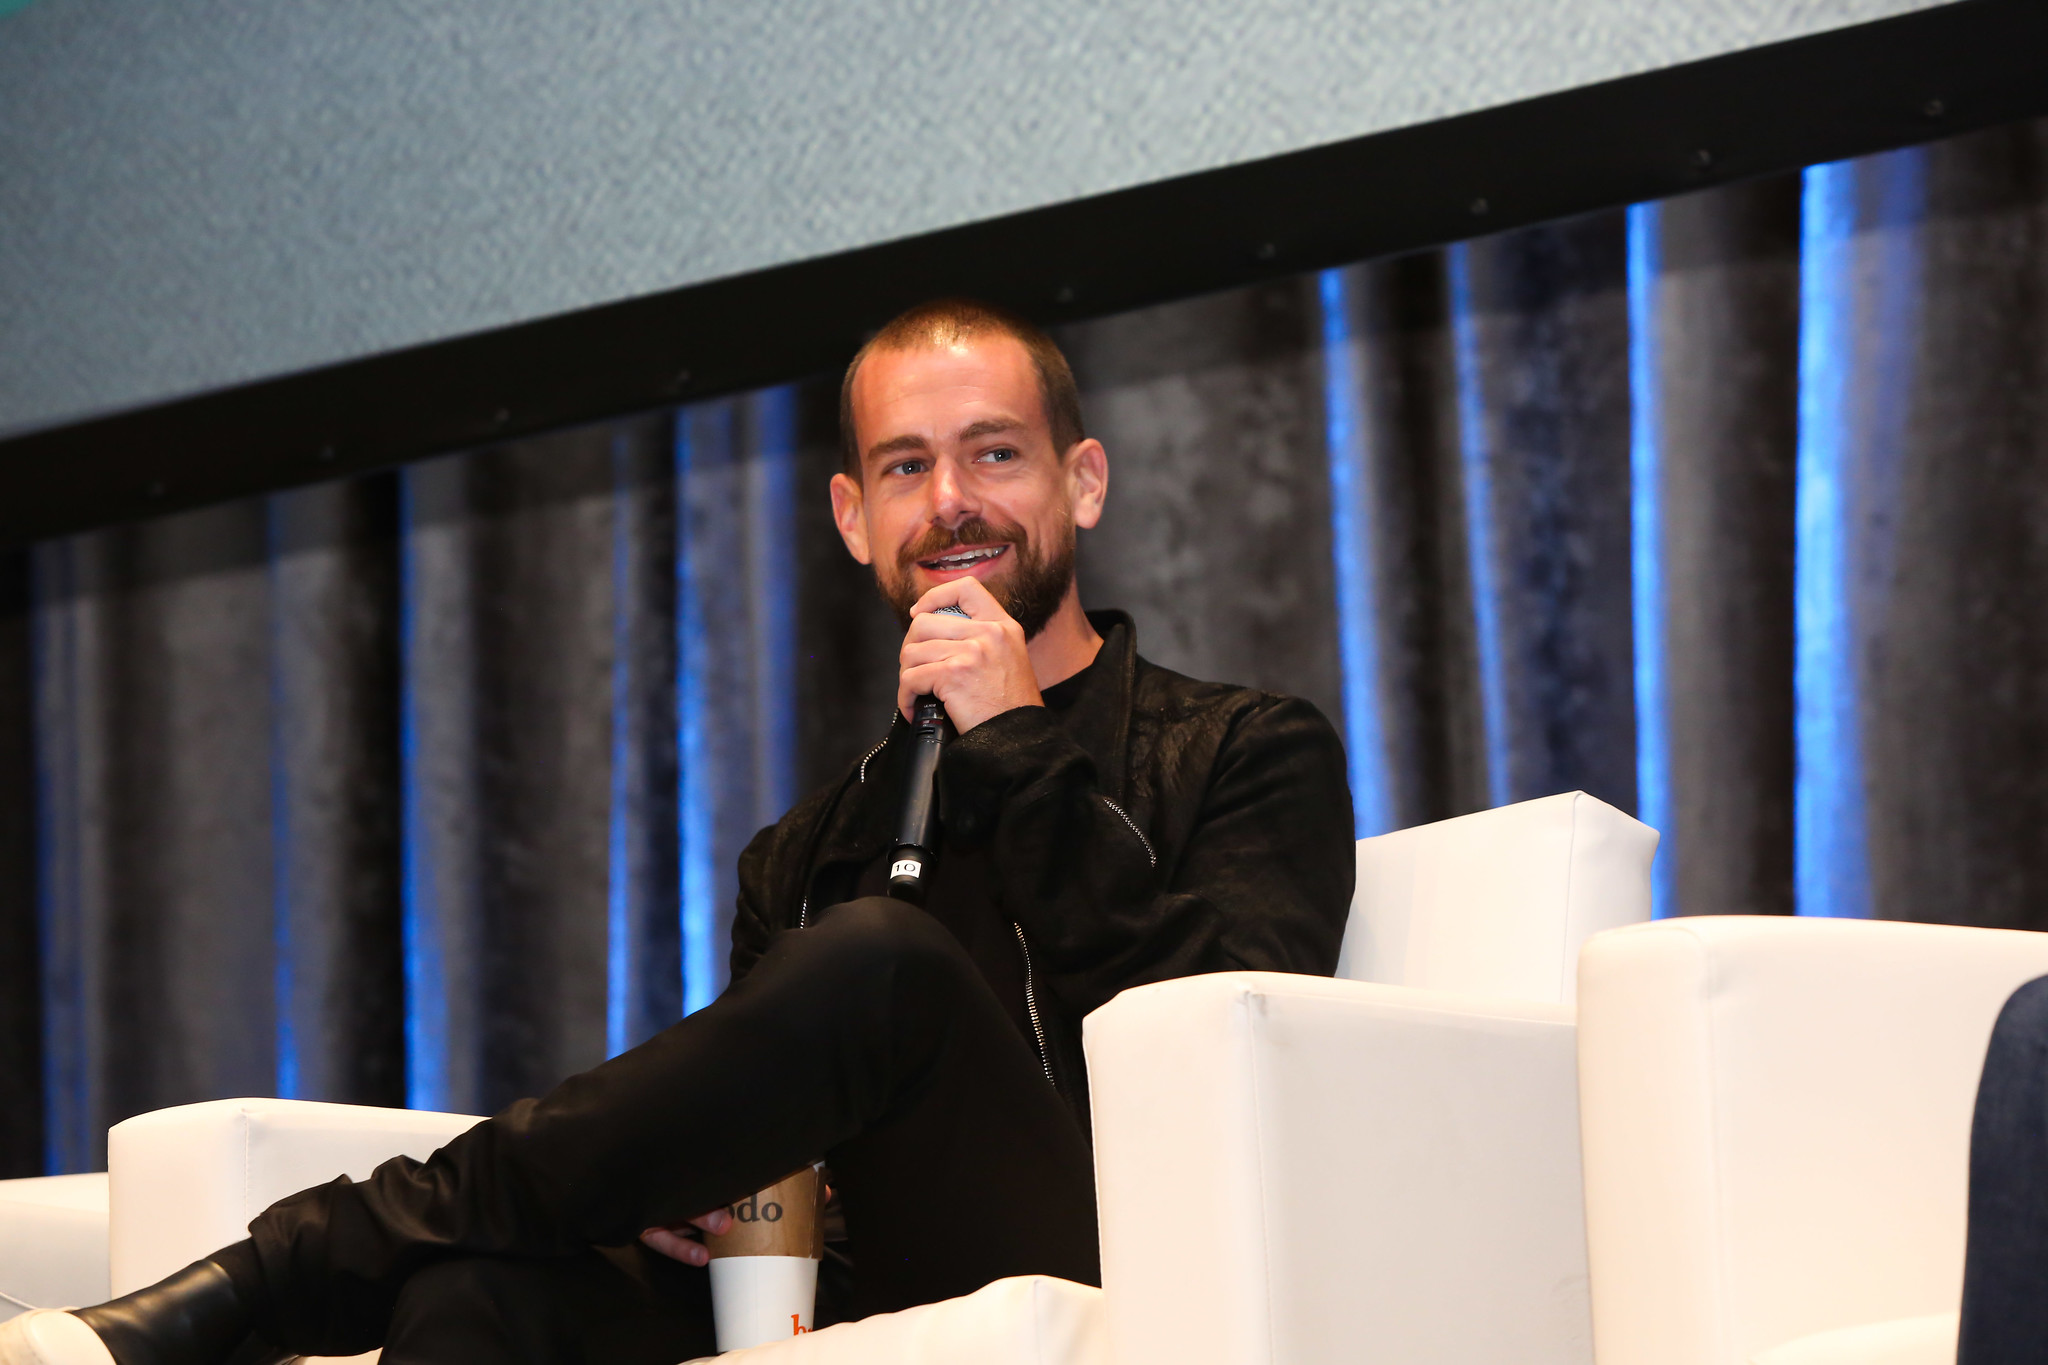 Square Completes $100M Investment in Underserved Communities